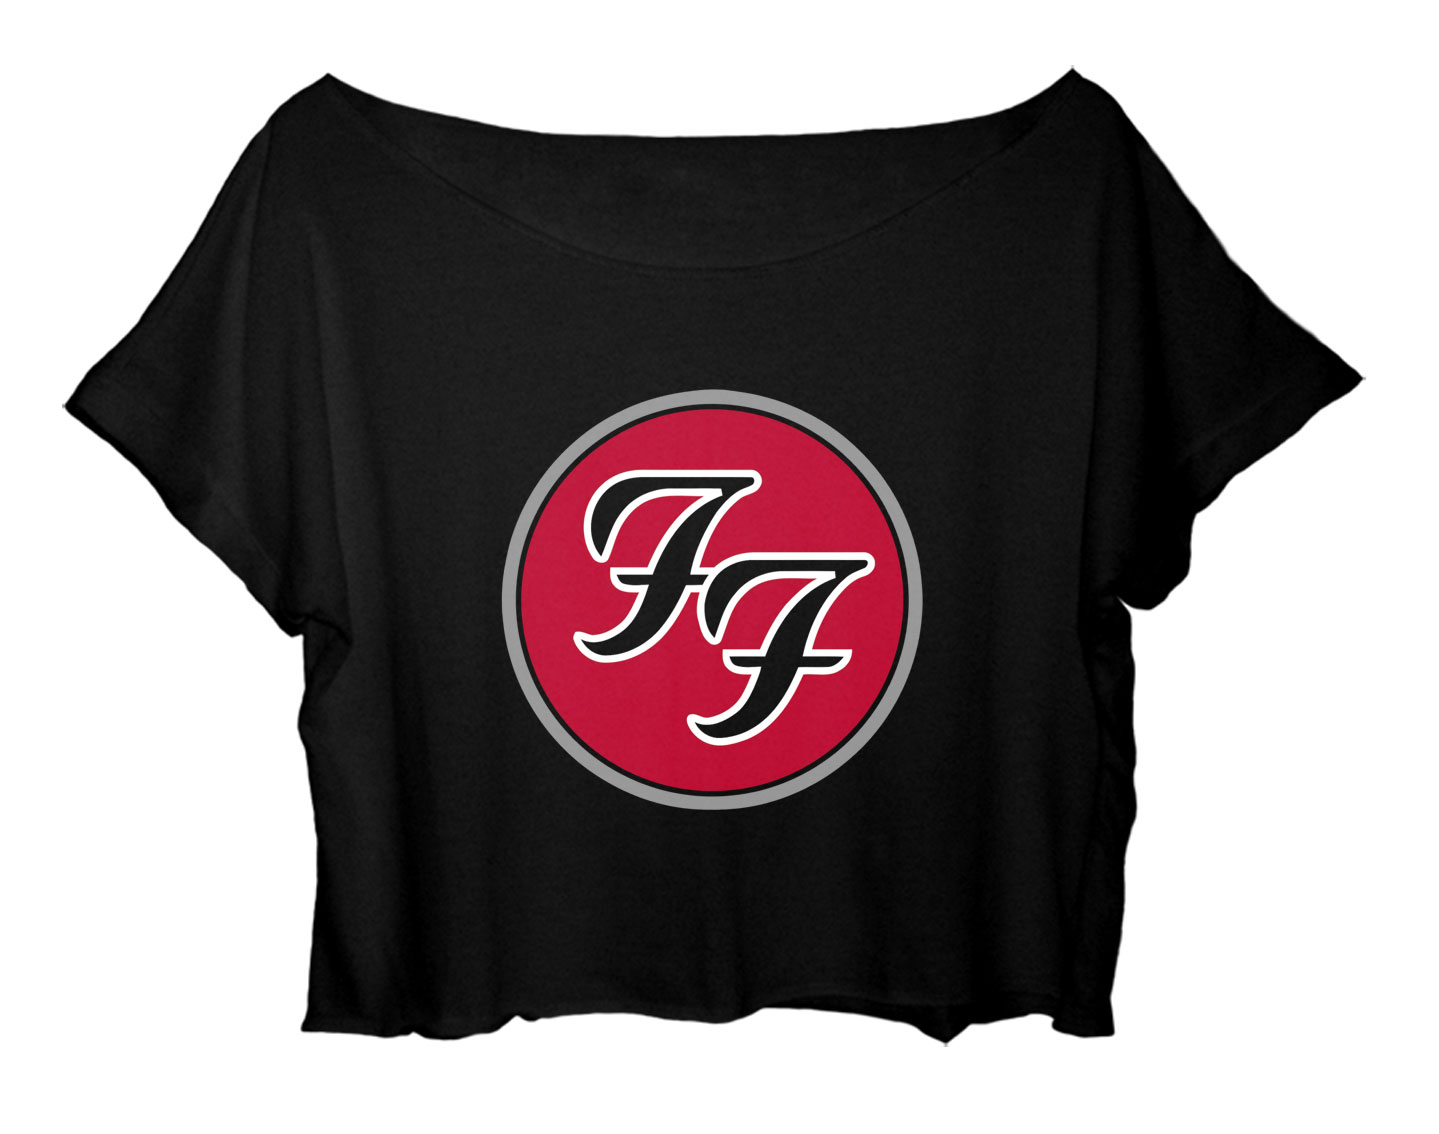 Women Crop Top Foo Fighter Symbol T Shirt Topteebase Online